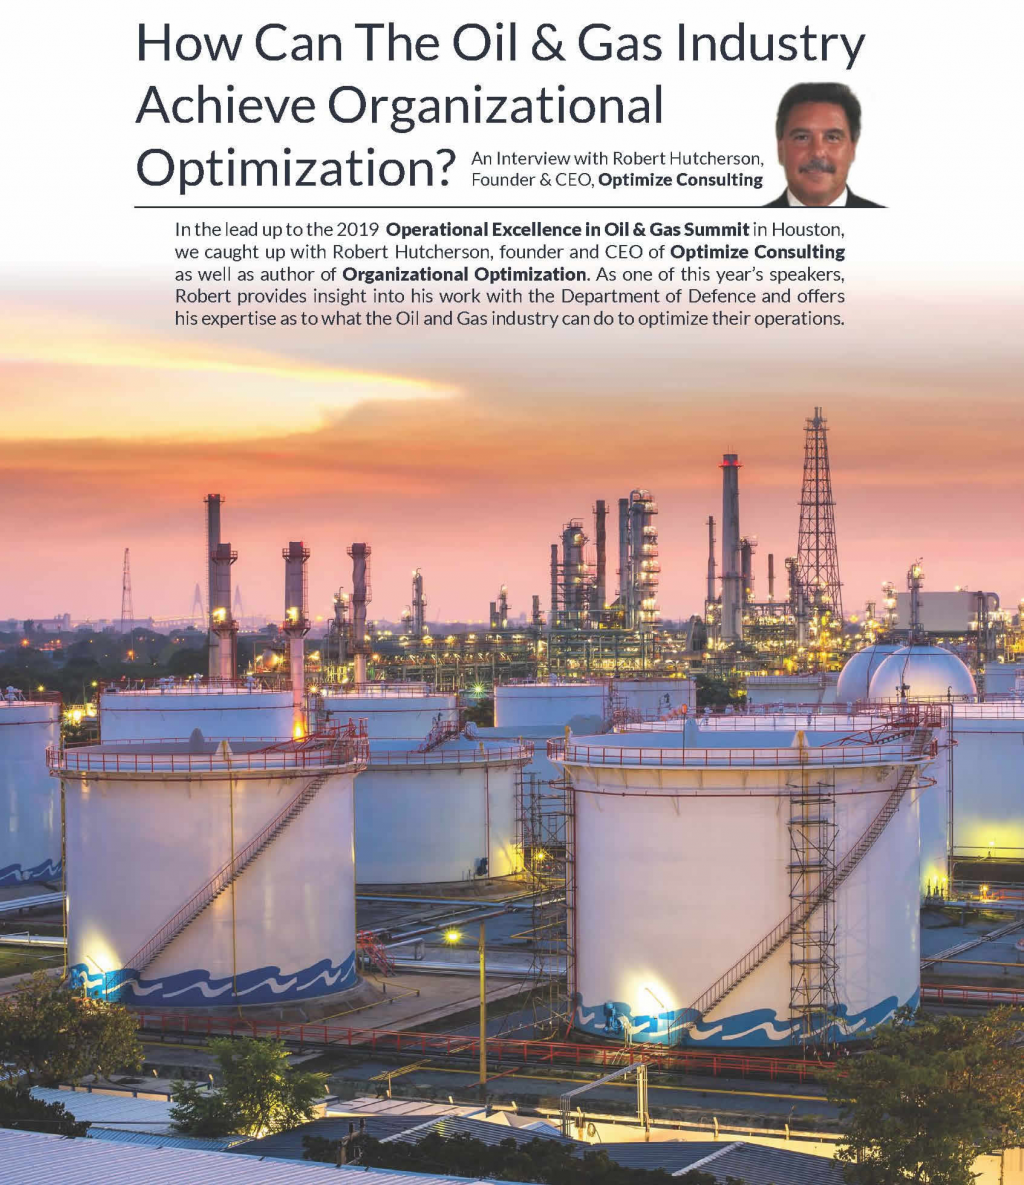 How Can The Oil & Gas Industry Achieve Organizational Optimization?